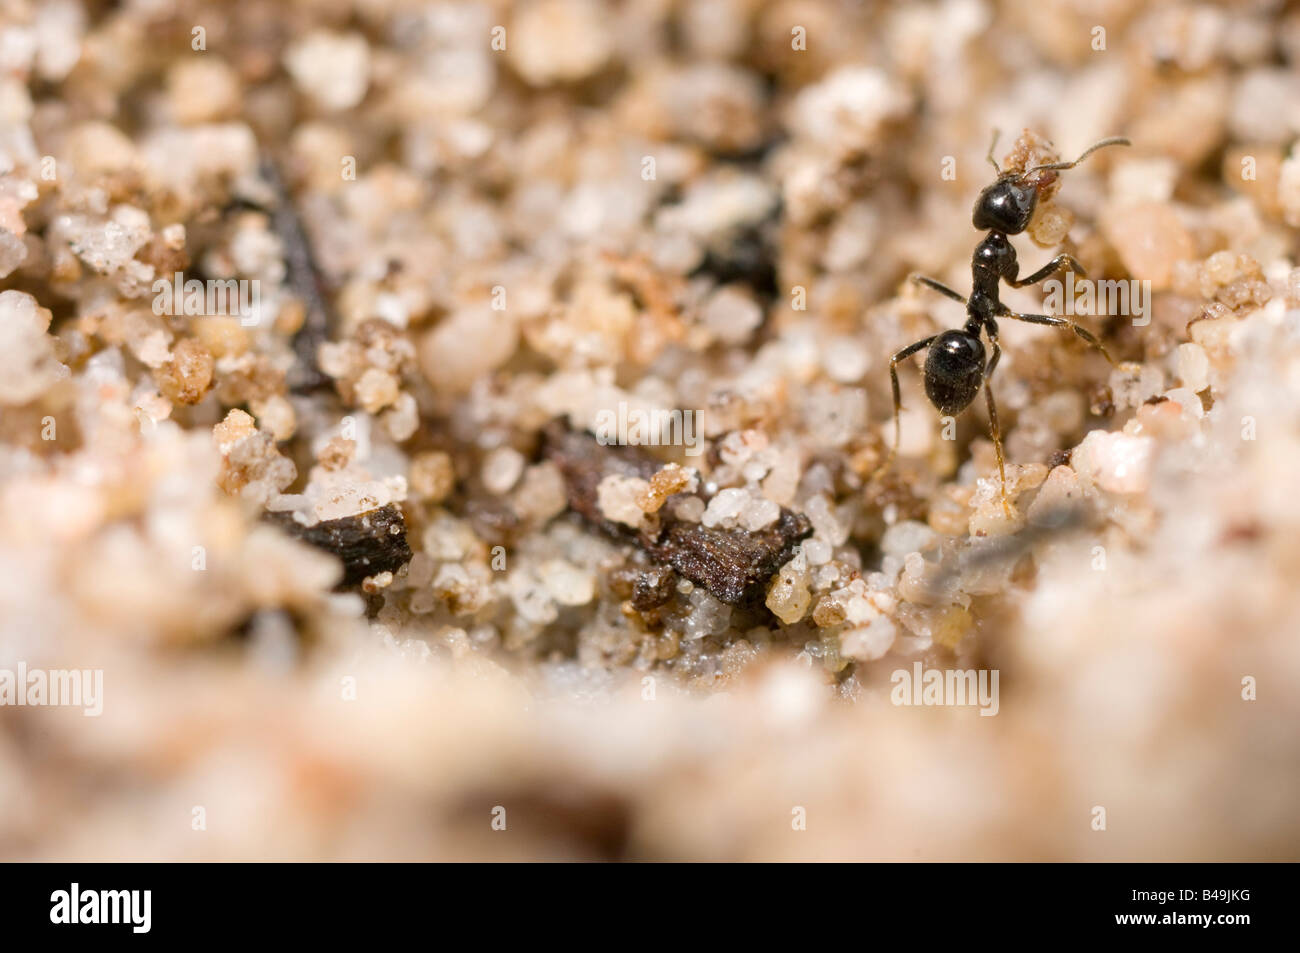 Tiny ant buidling nest grain by grain - Stock Image